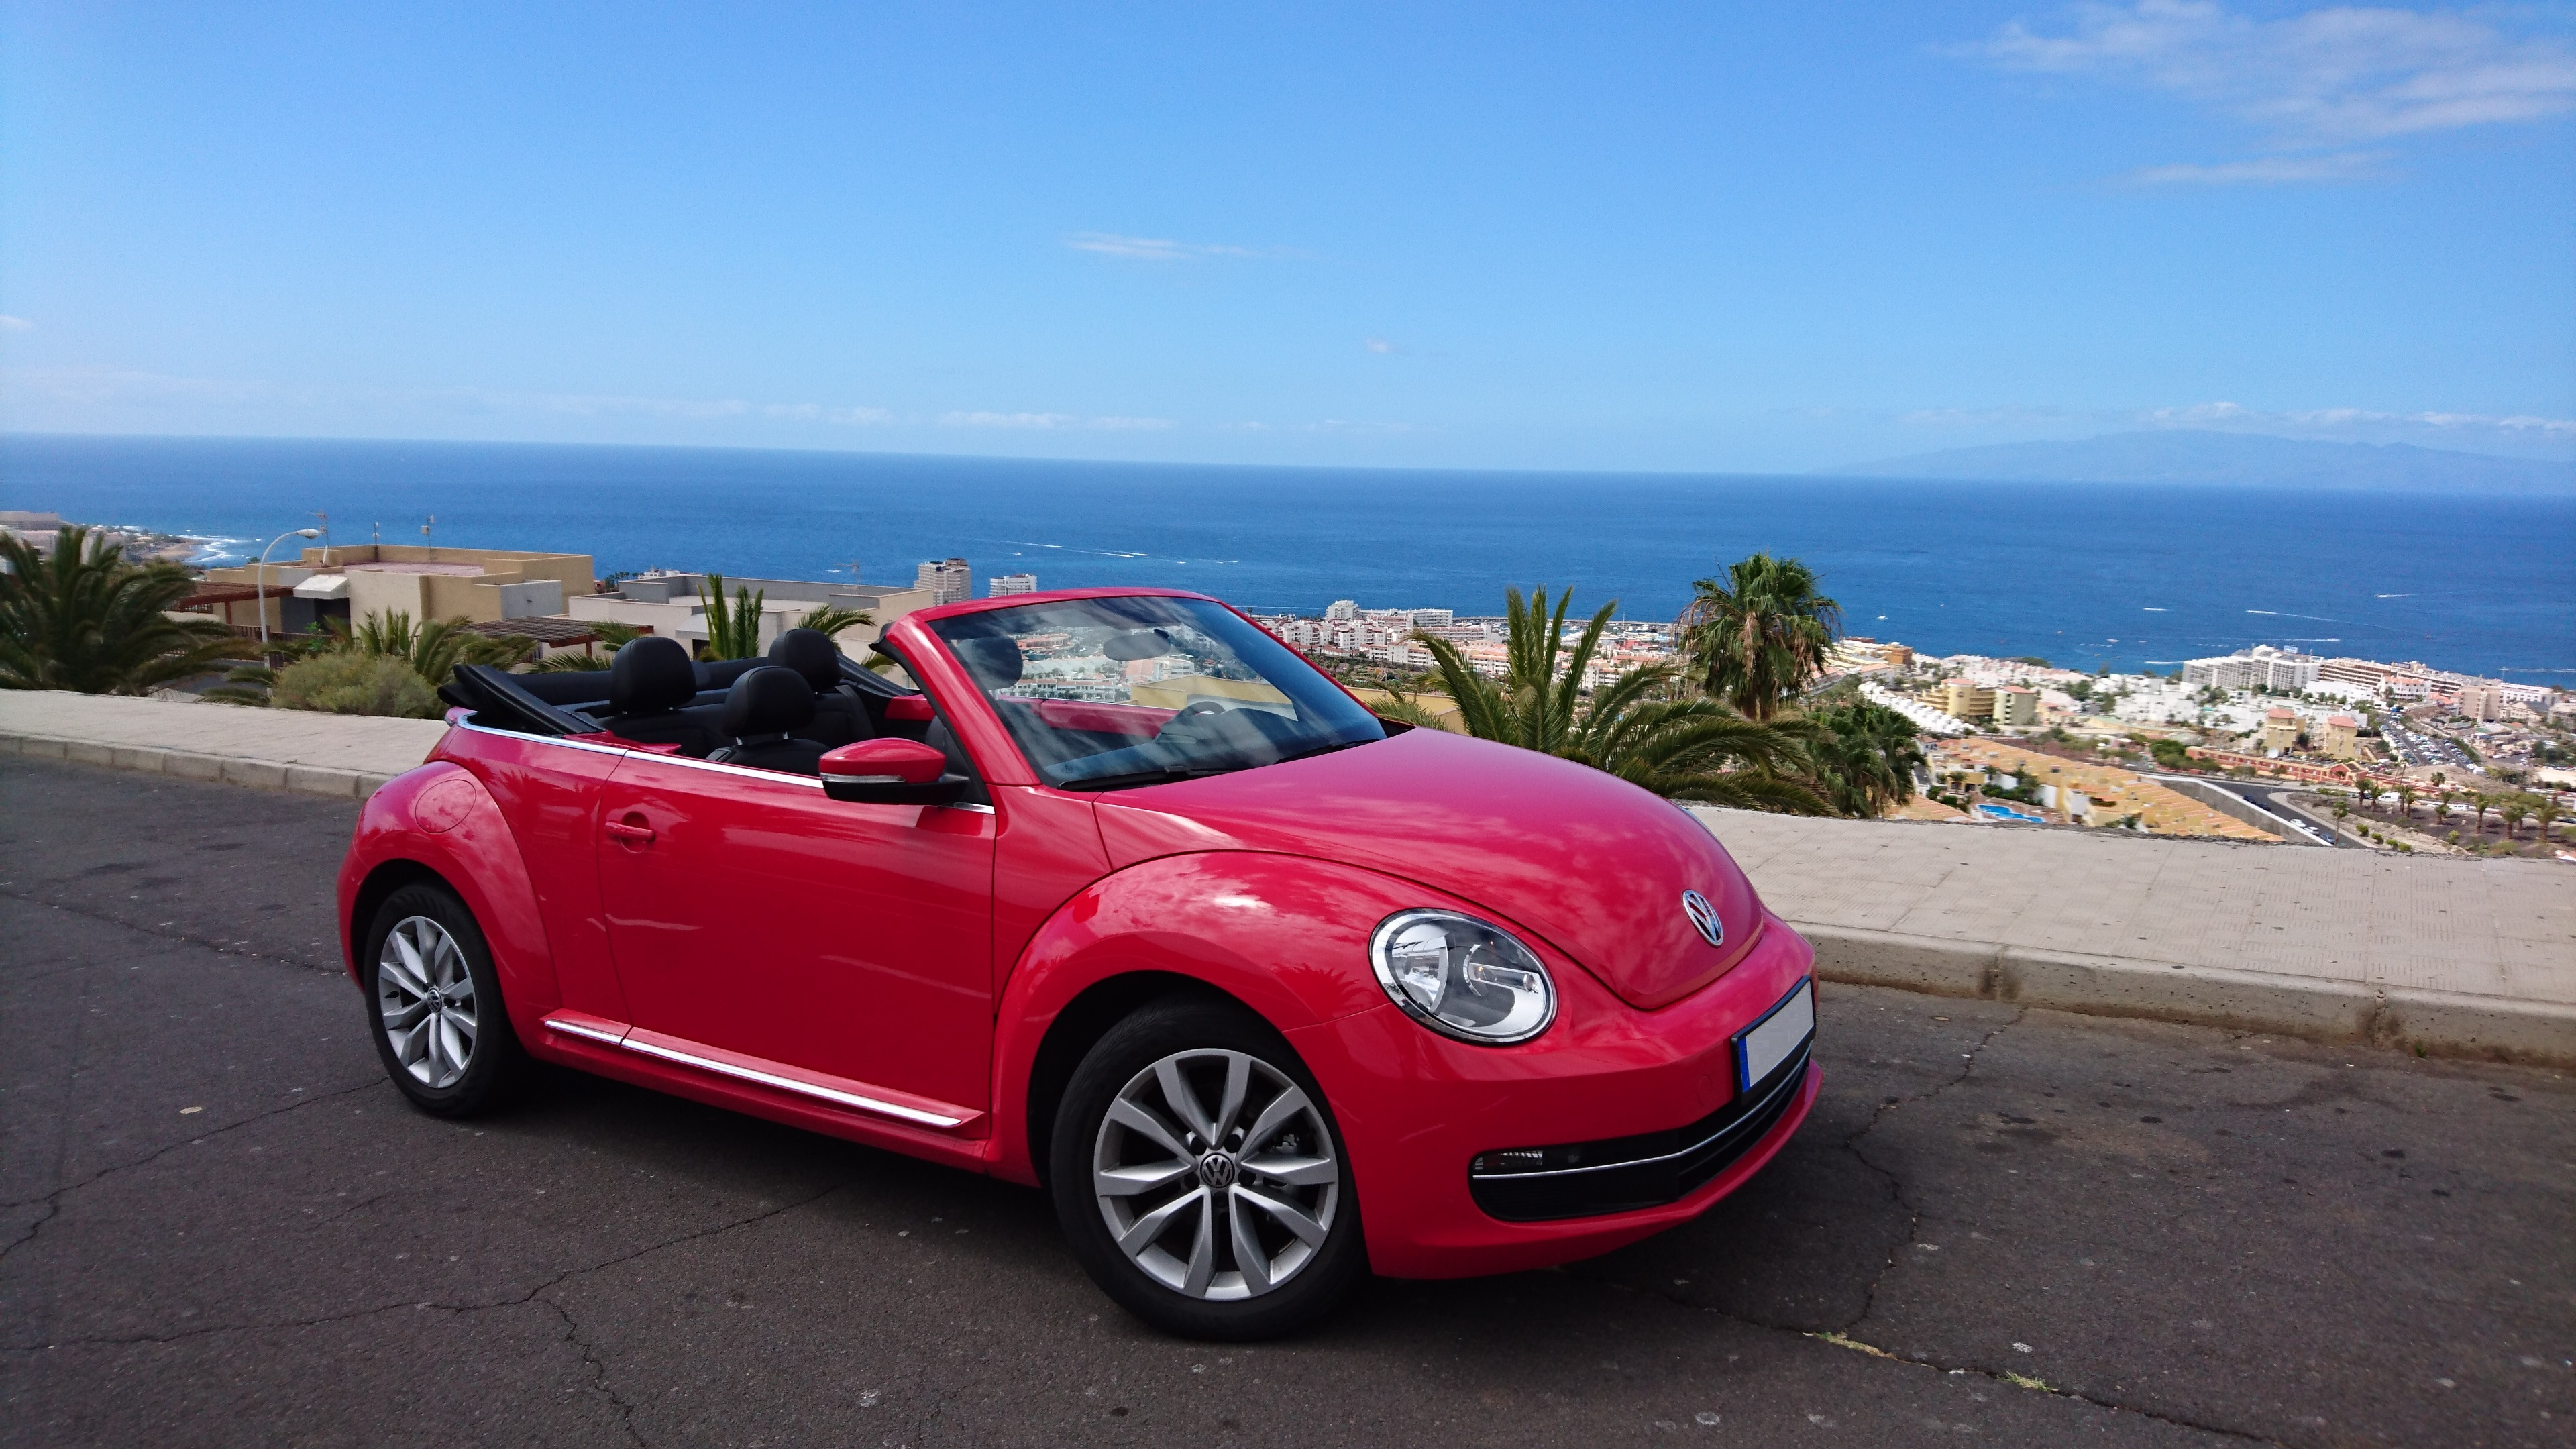 vw beetle cabrio red. Black Bedroom Furniture Sets. Home Design Ideas